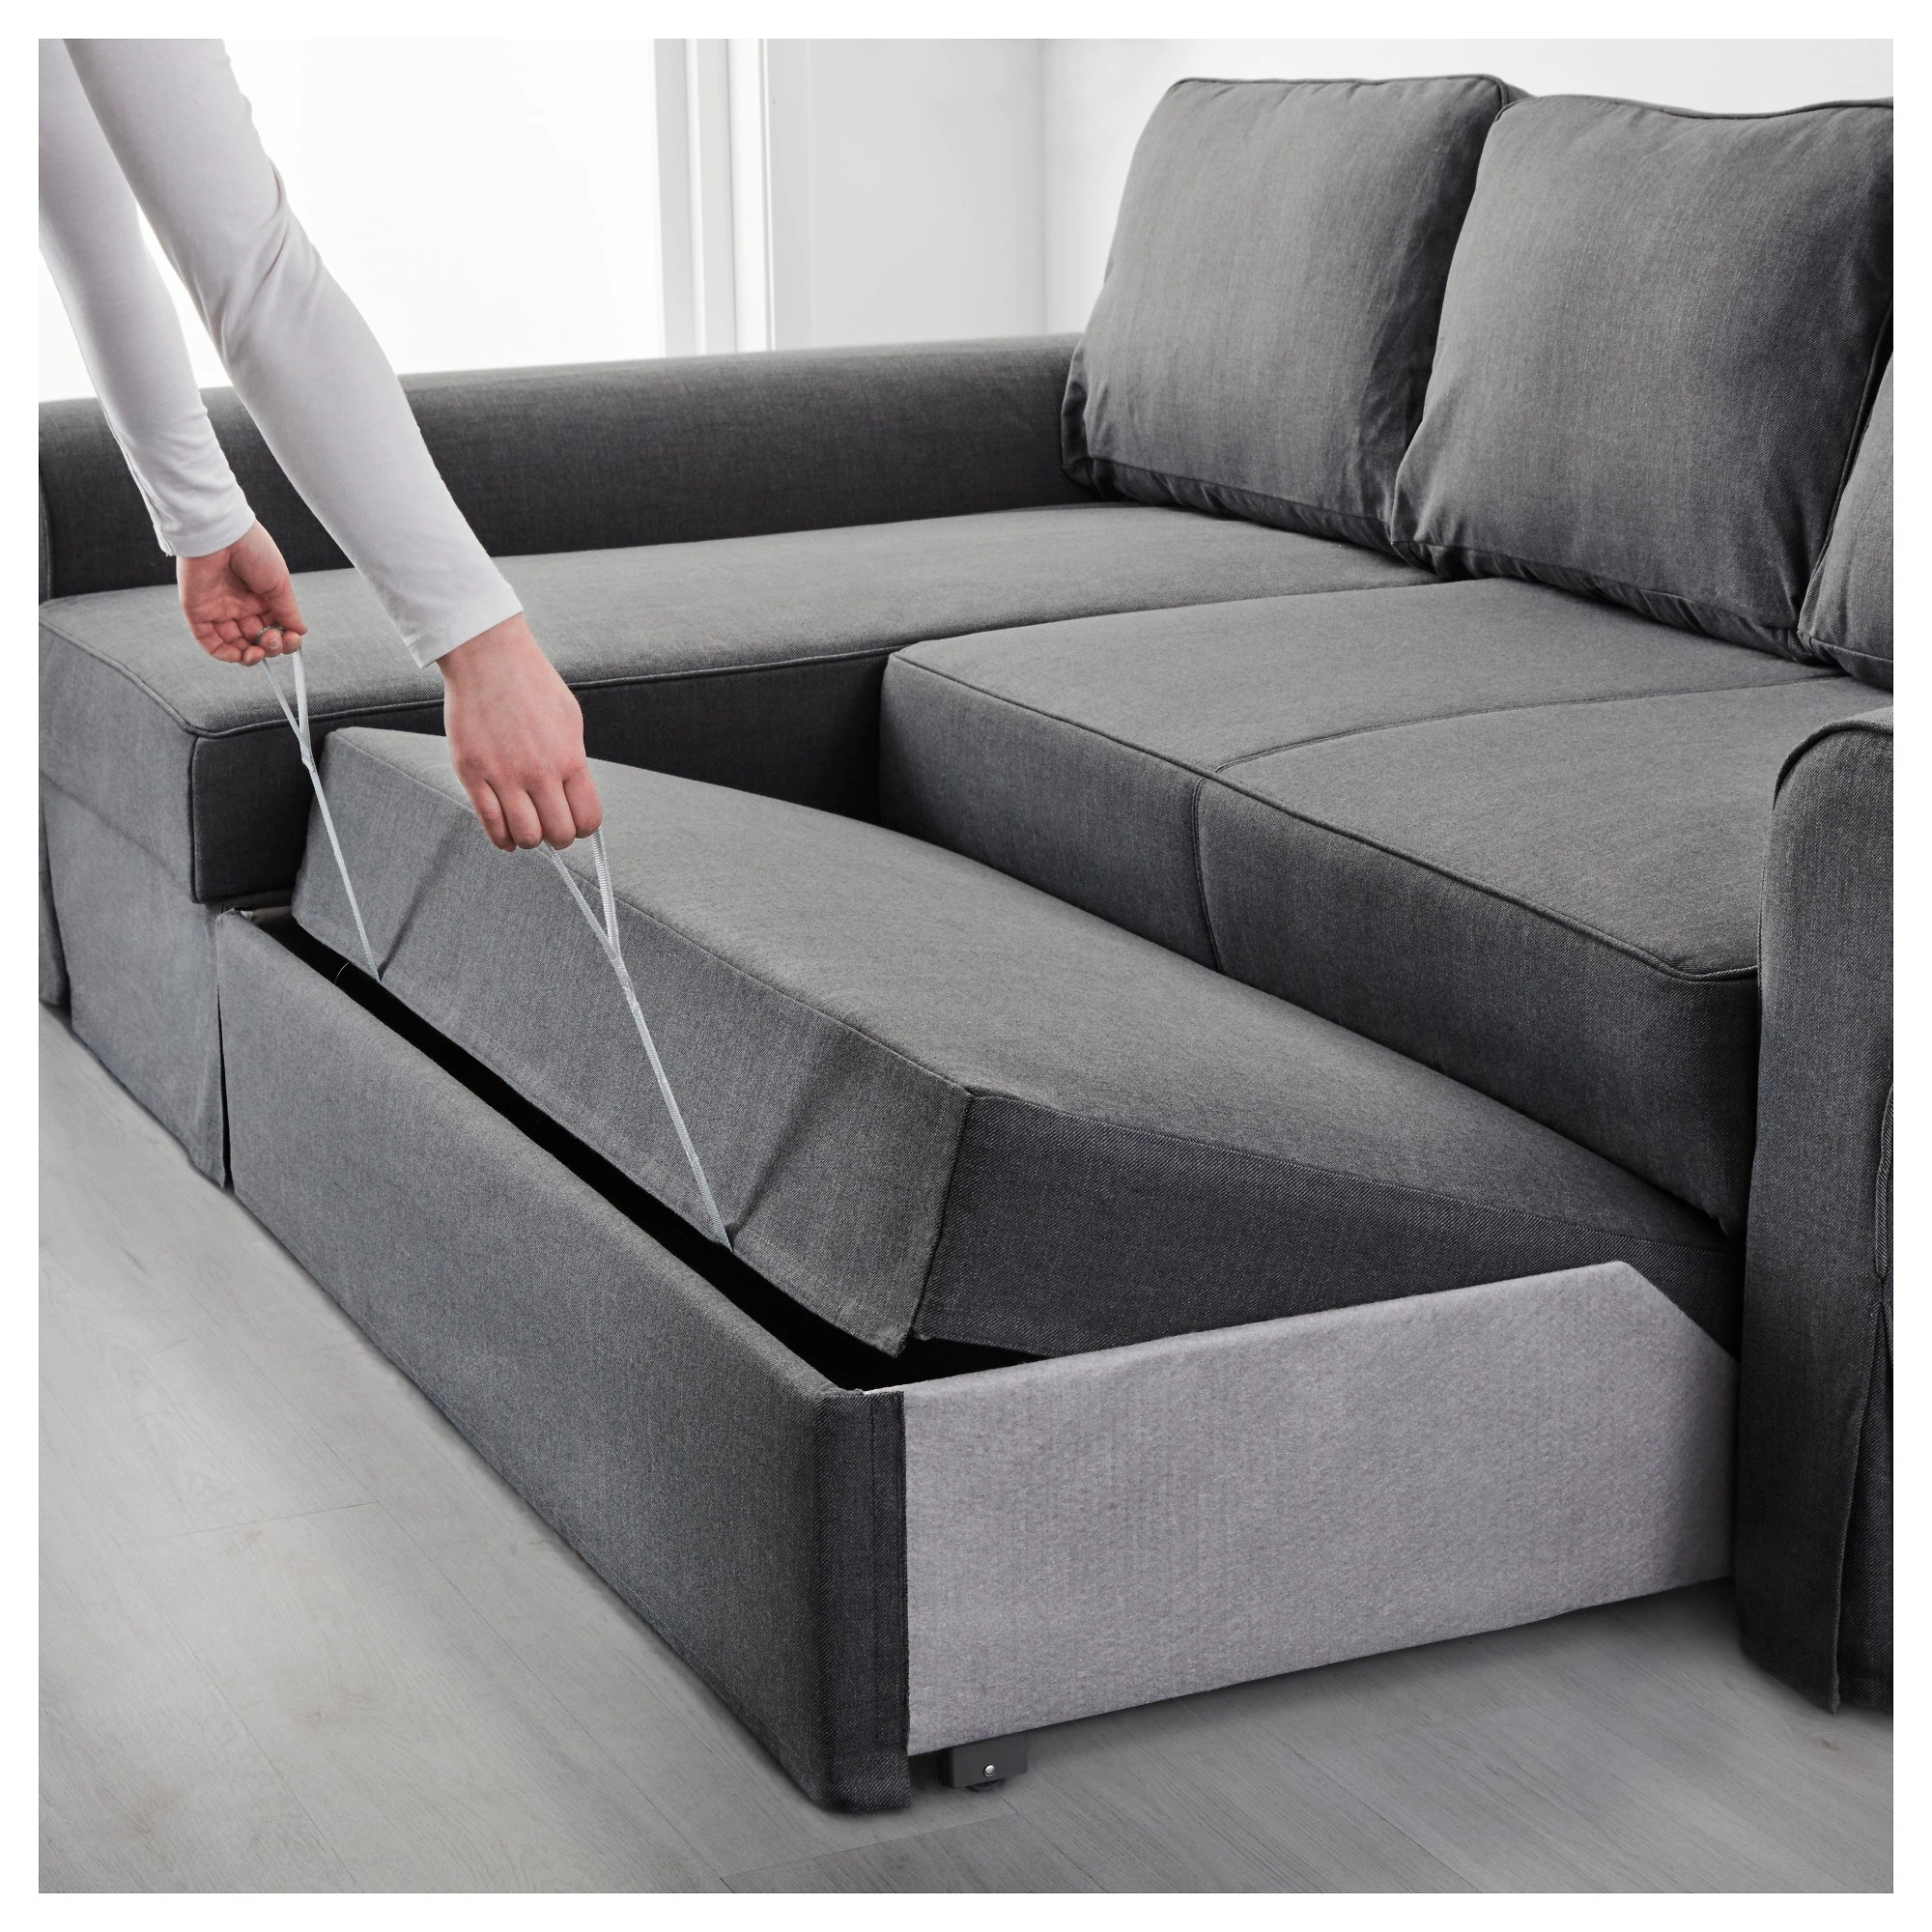 Backabro Ecksofa Backabro Sofa Bed With Chaise Longue Nordvalla Dark Grey Ikea